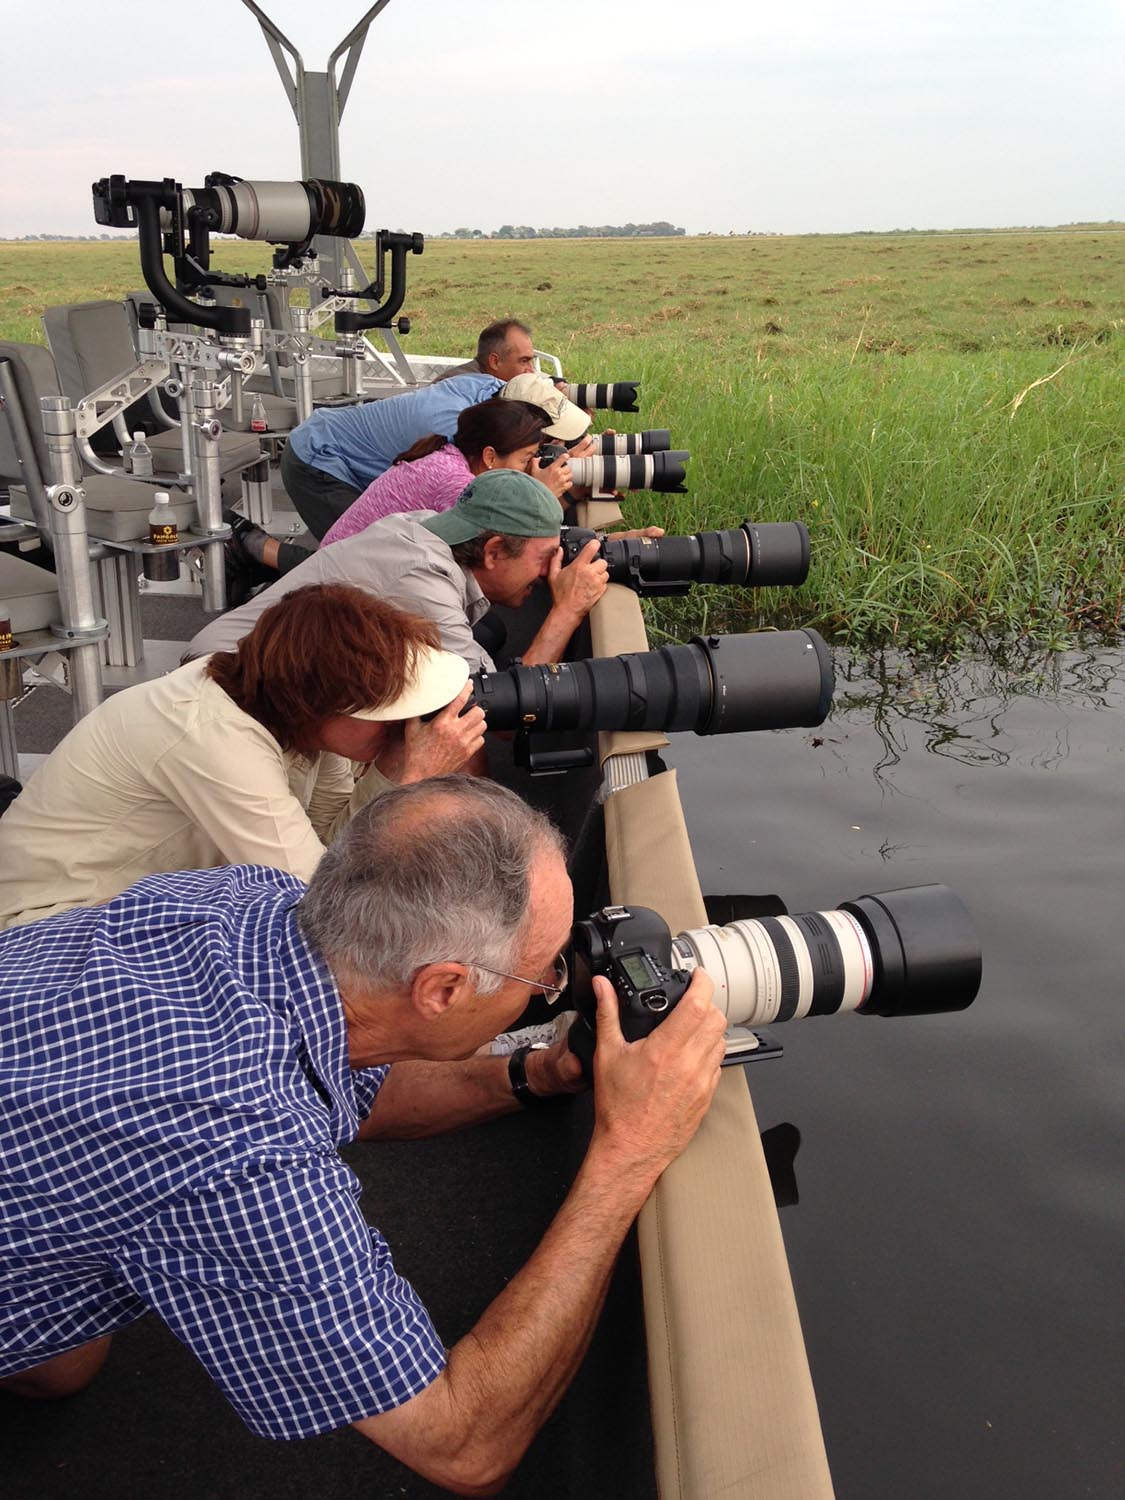 pangolin chobe hotel botswana-zambia-in-style-kasane-specialised-equipment-guides-wildlife-photography